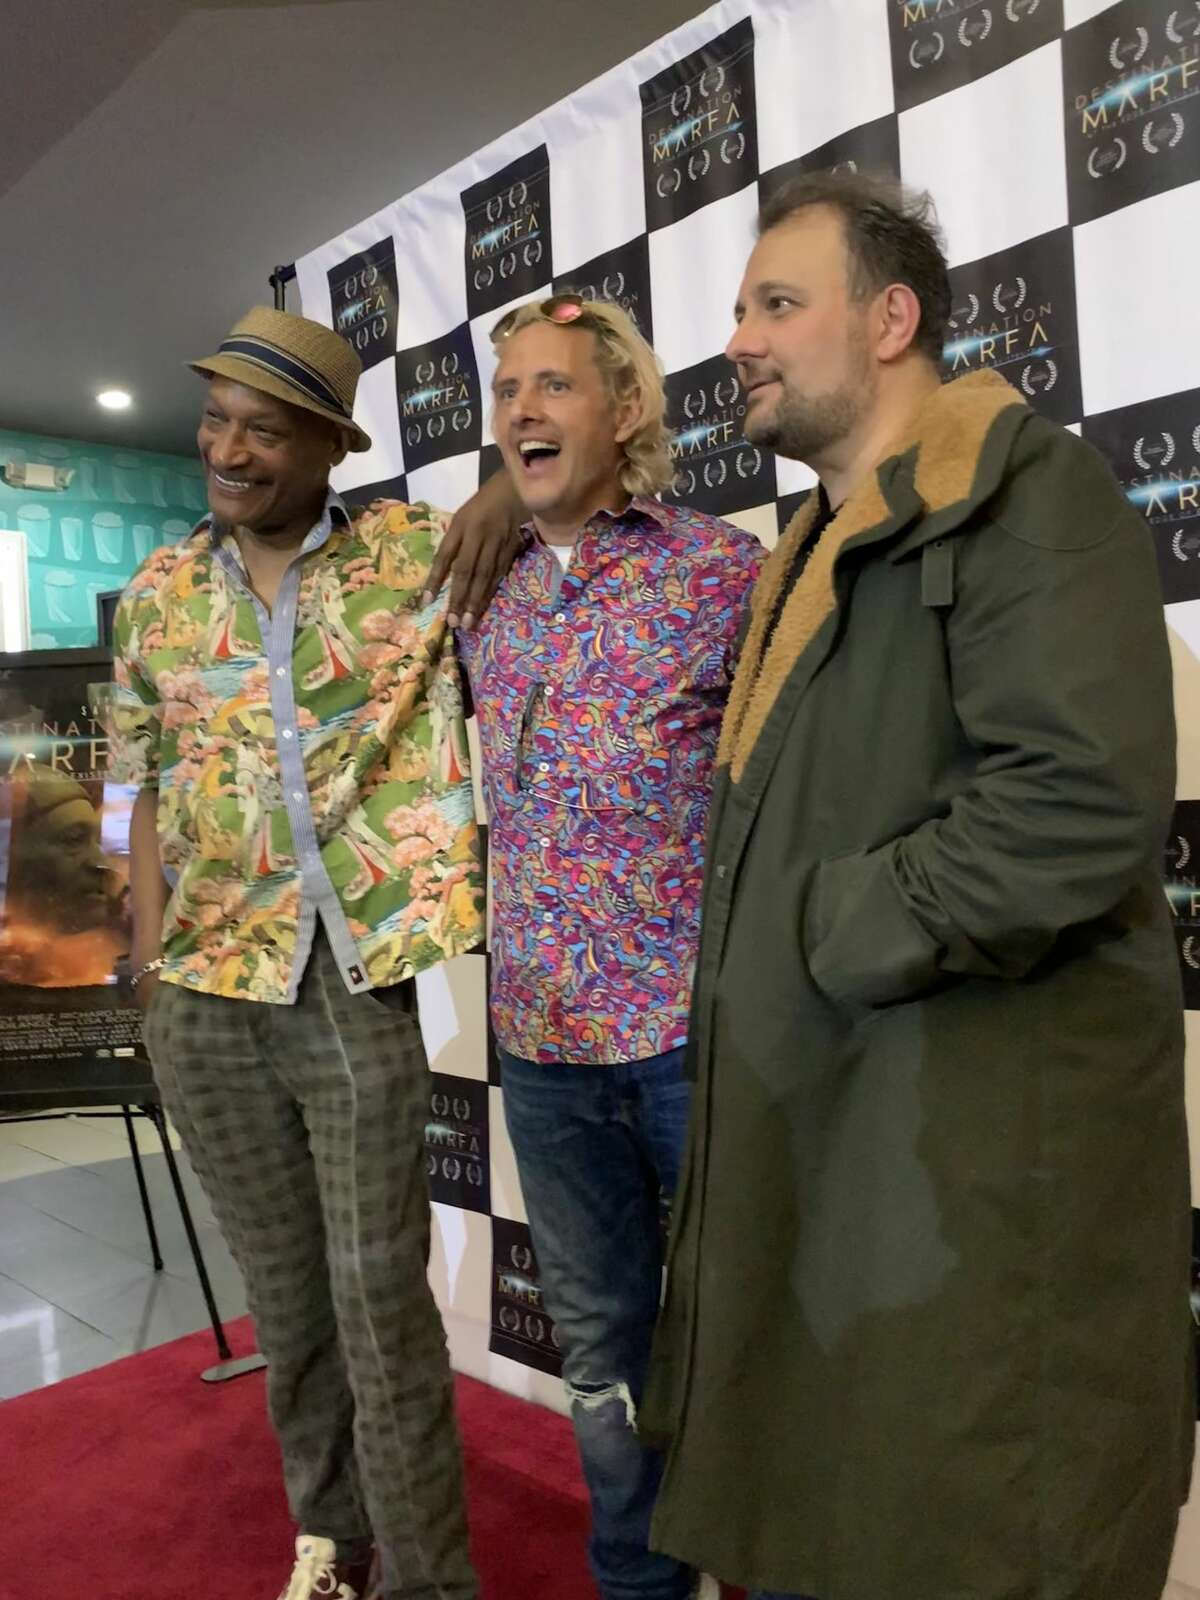 """Lockney native Andy Stapp debuted his movie """"Destination Marfa"""" to local audiences on Tuesday at Lubbock. Stapp, seen here with stars Tony Todd (left) and Stelio Savante (far right) used locations in Plainview and Lockney to shoot the film."""